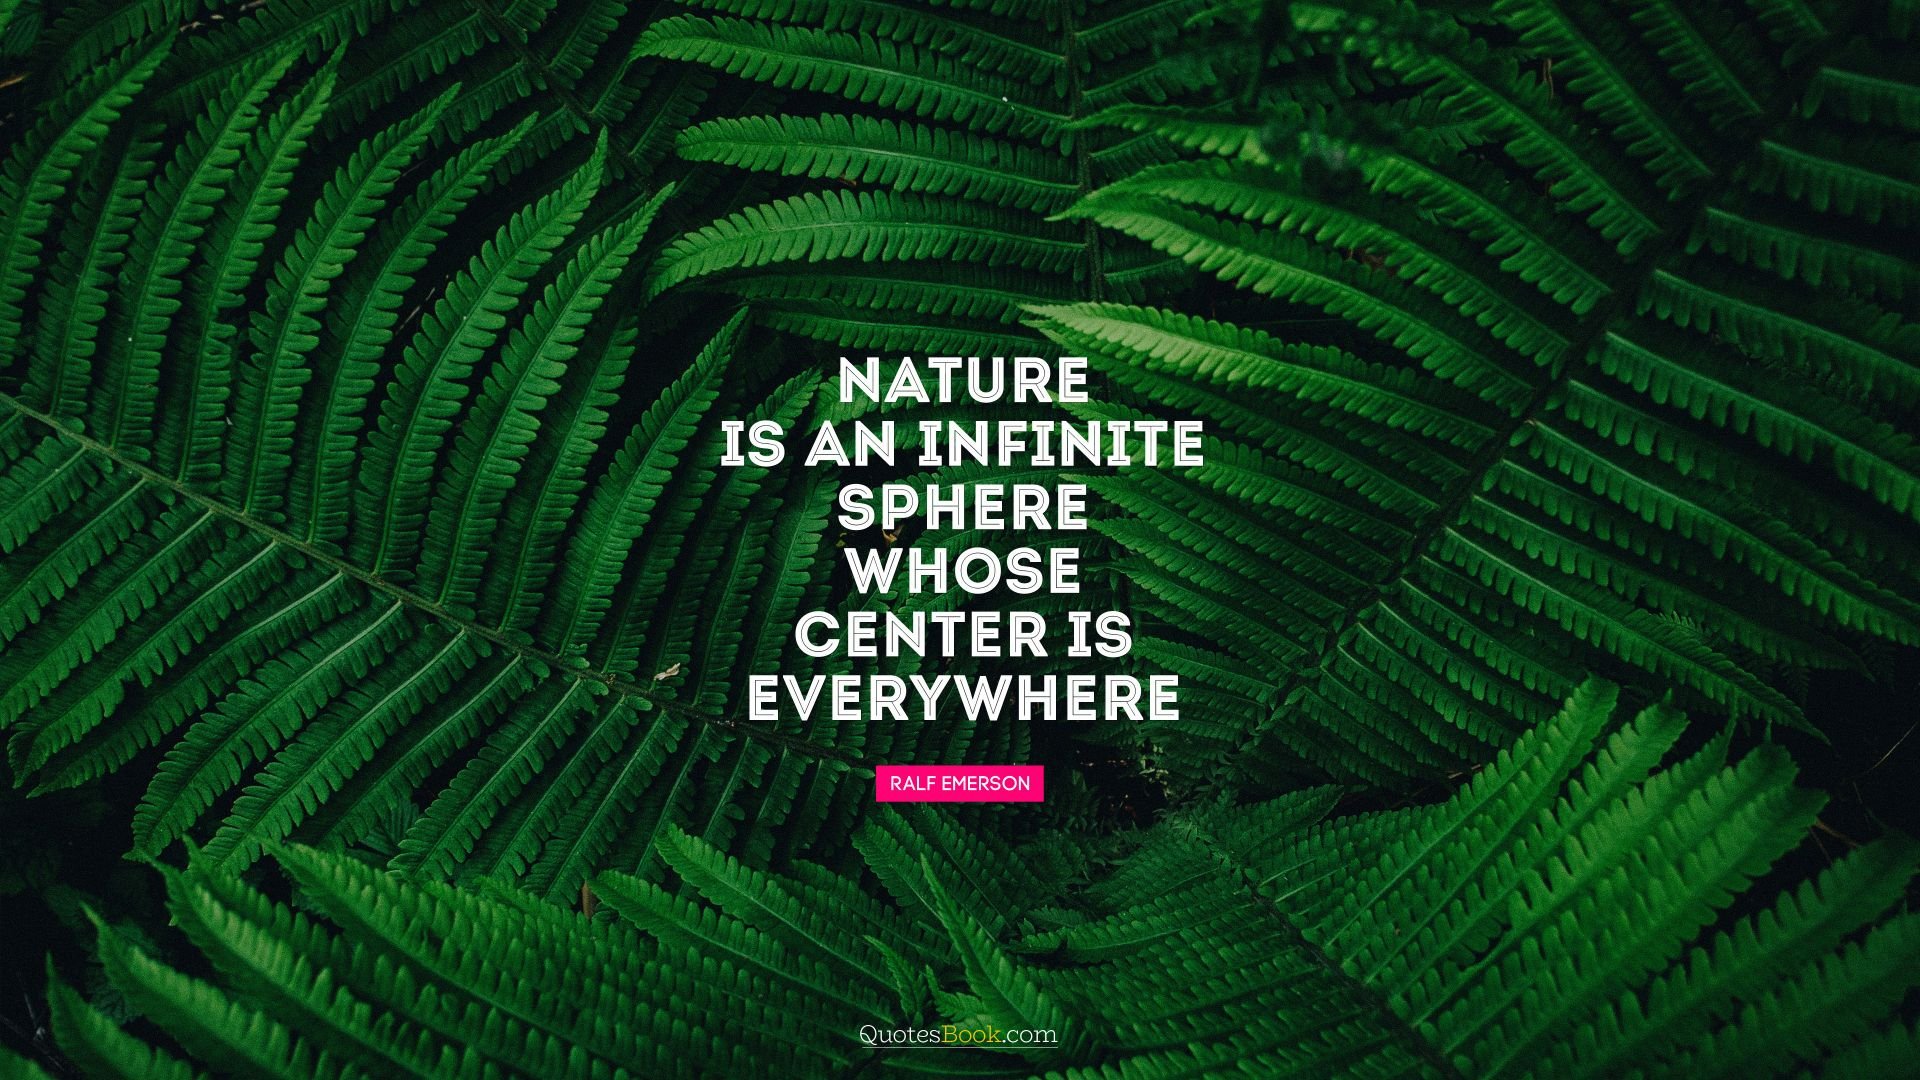 Nature is an infinite sphere whose center is everywhere. - Quote by Ralph Waldo Emerson